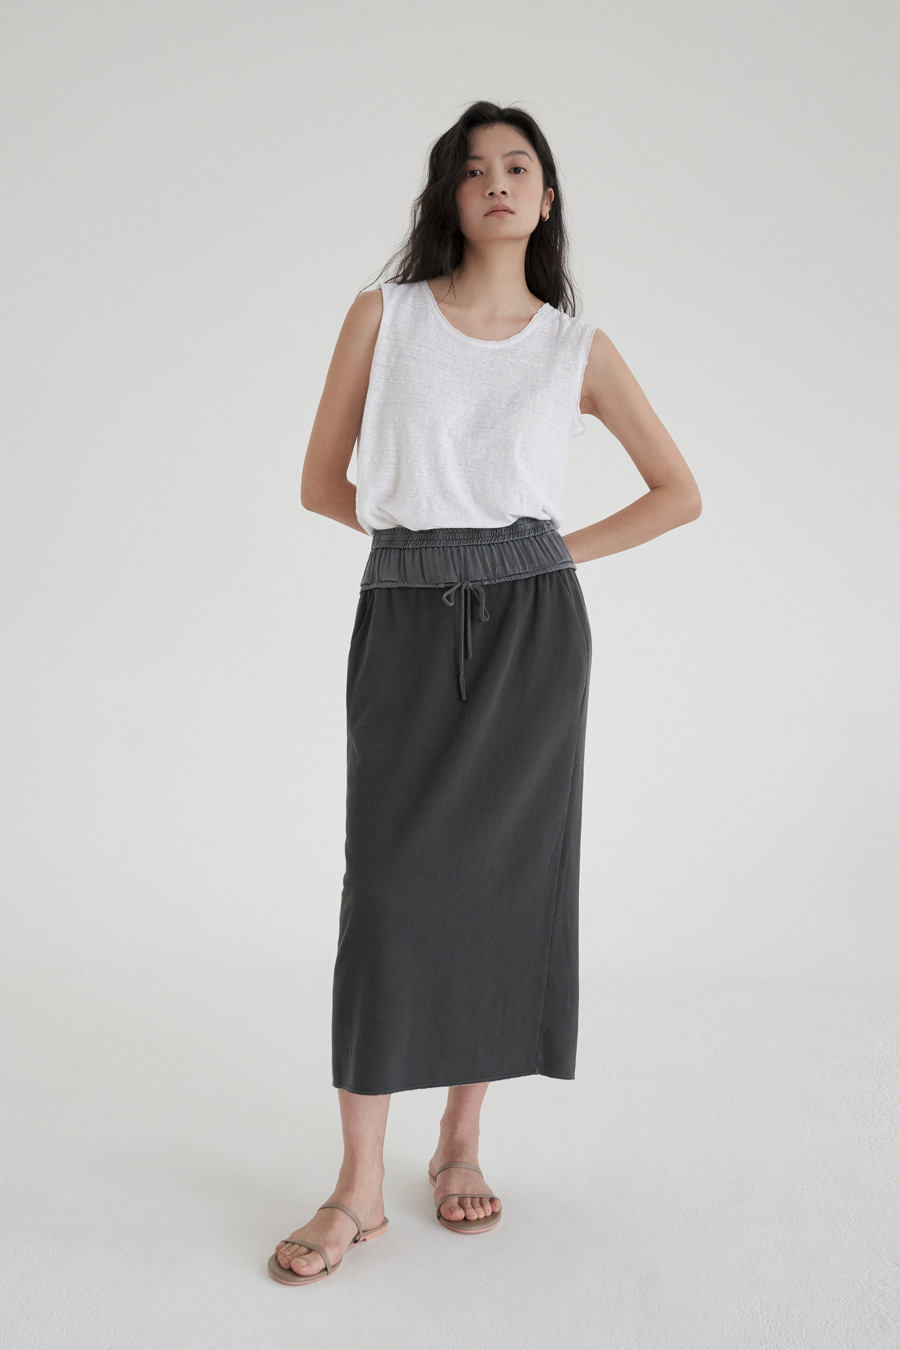 new coloration dying skirt (2colors)